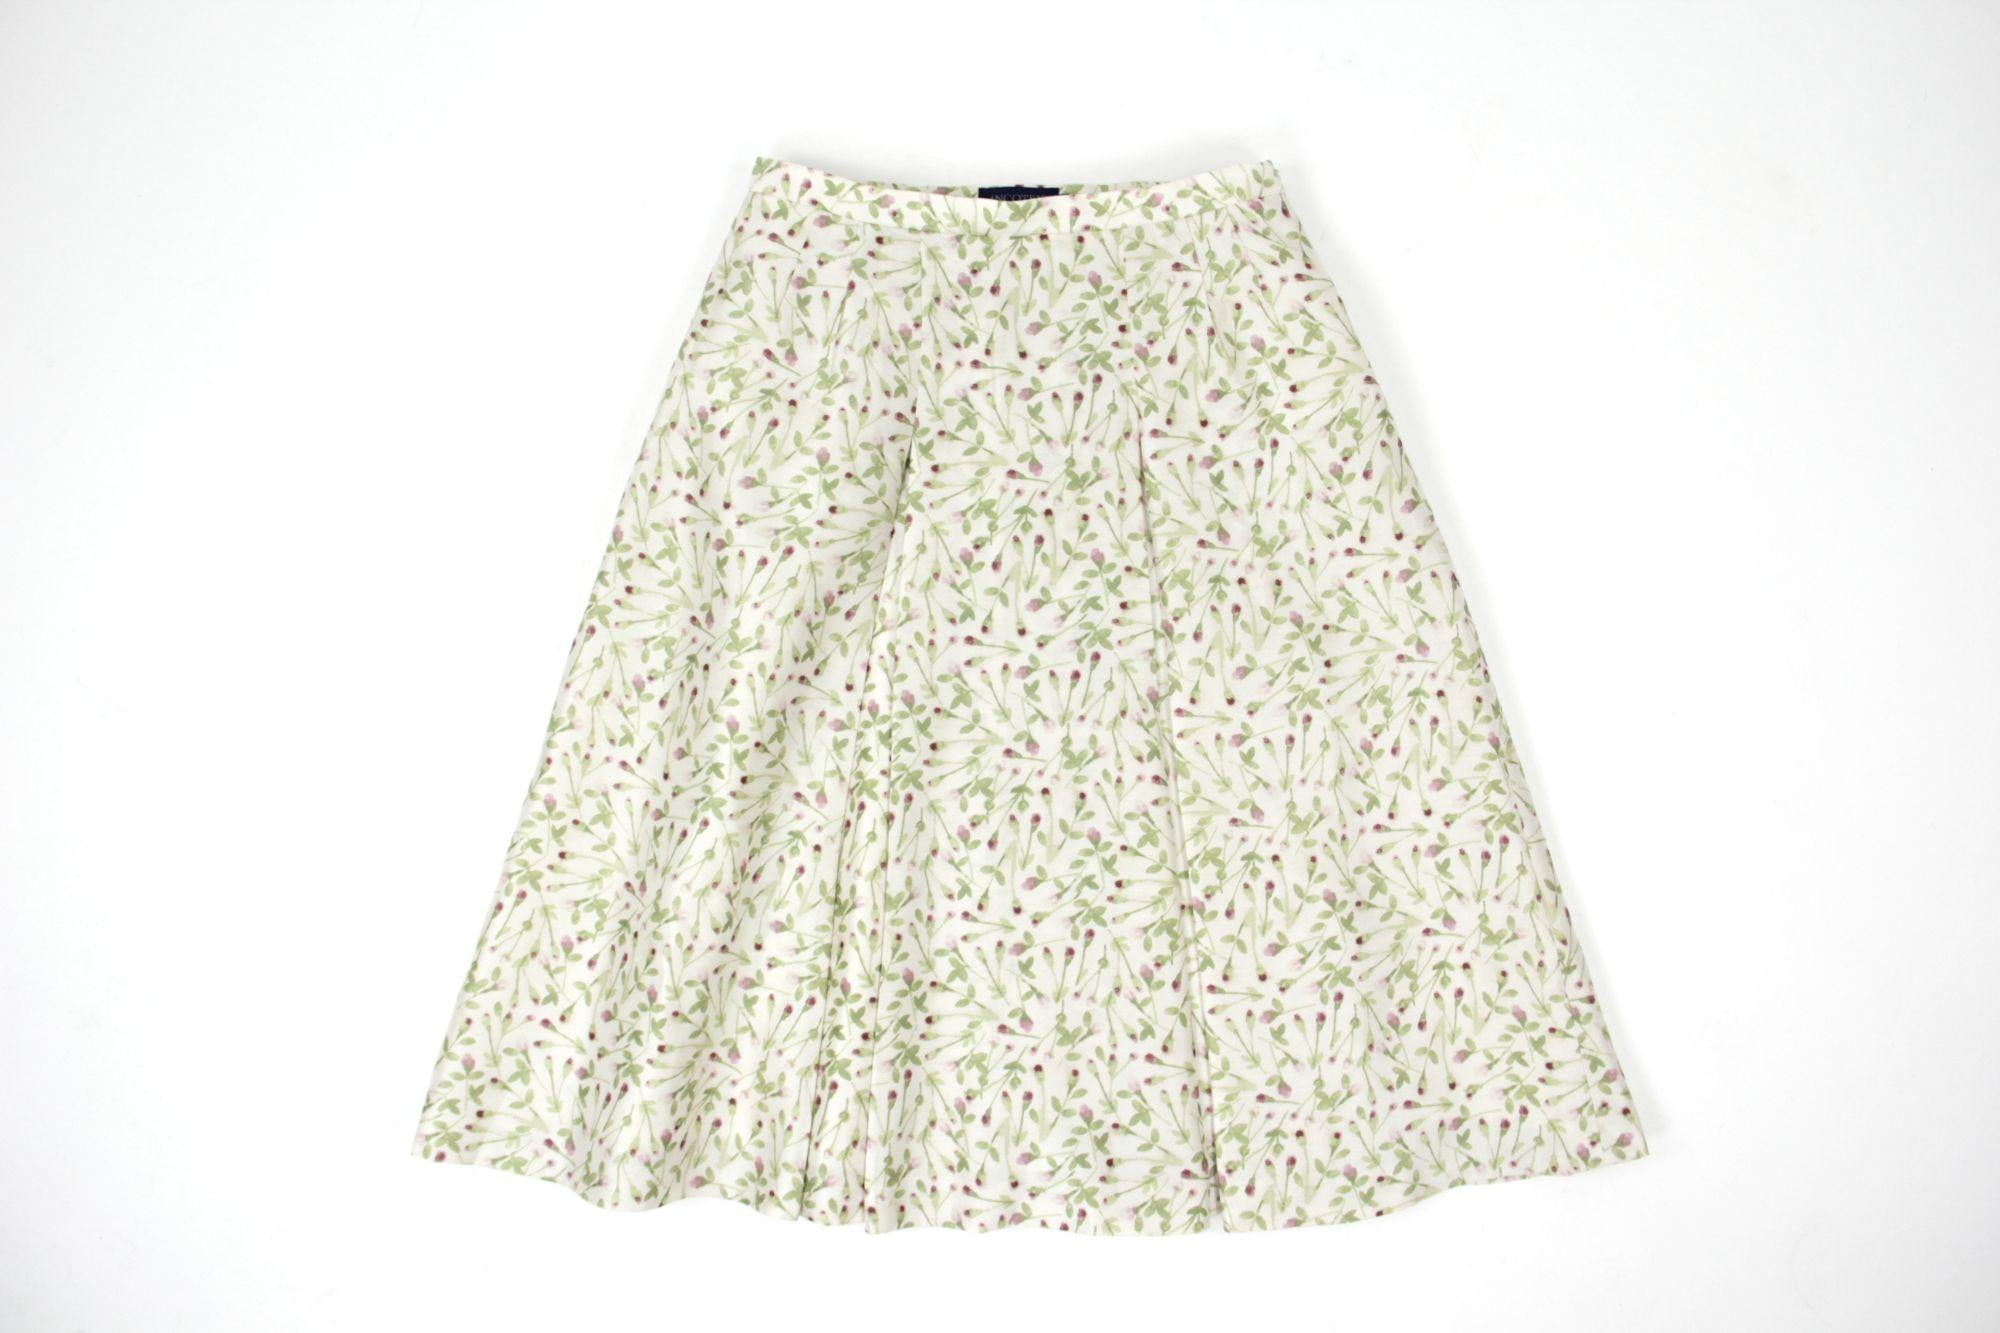 Incotex Silk Wool Carnation Flower Print Pleated A Line Skirt, IT 44, EU 38, US 8